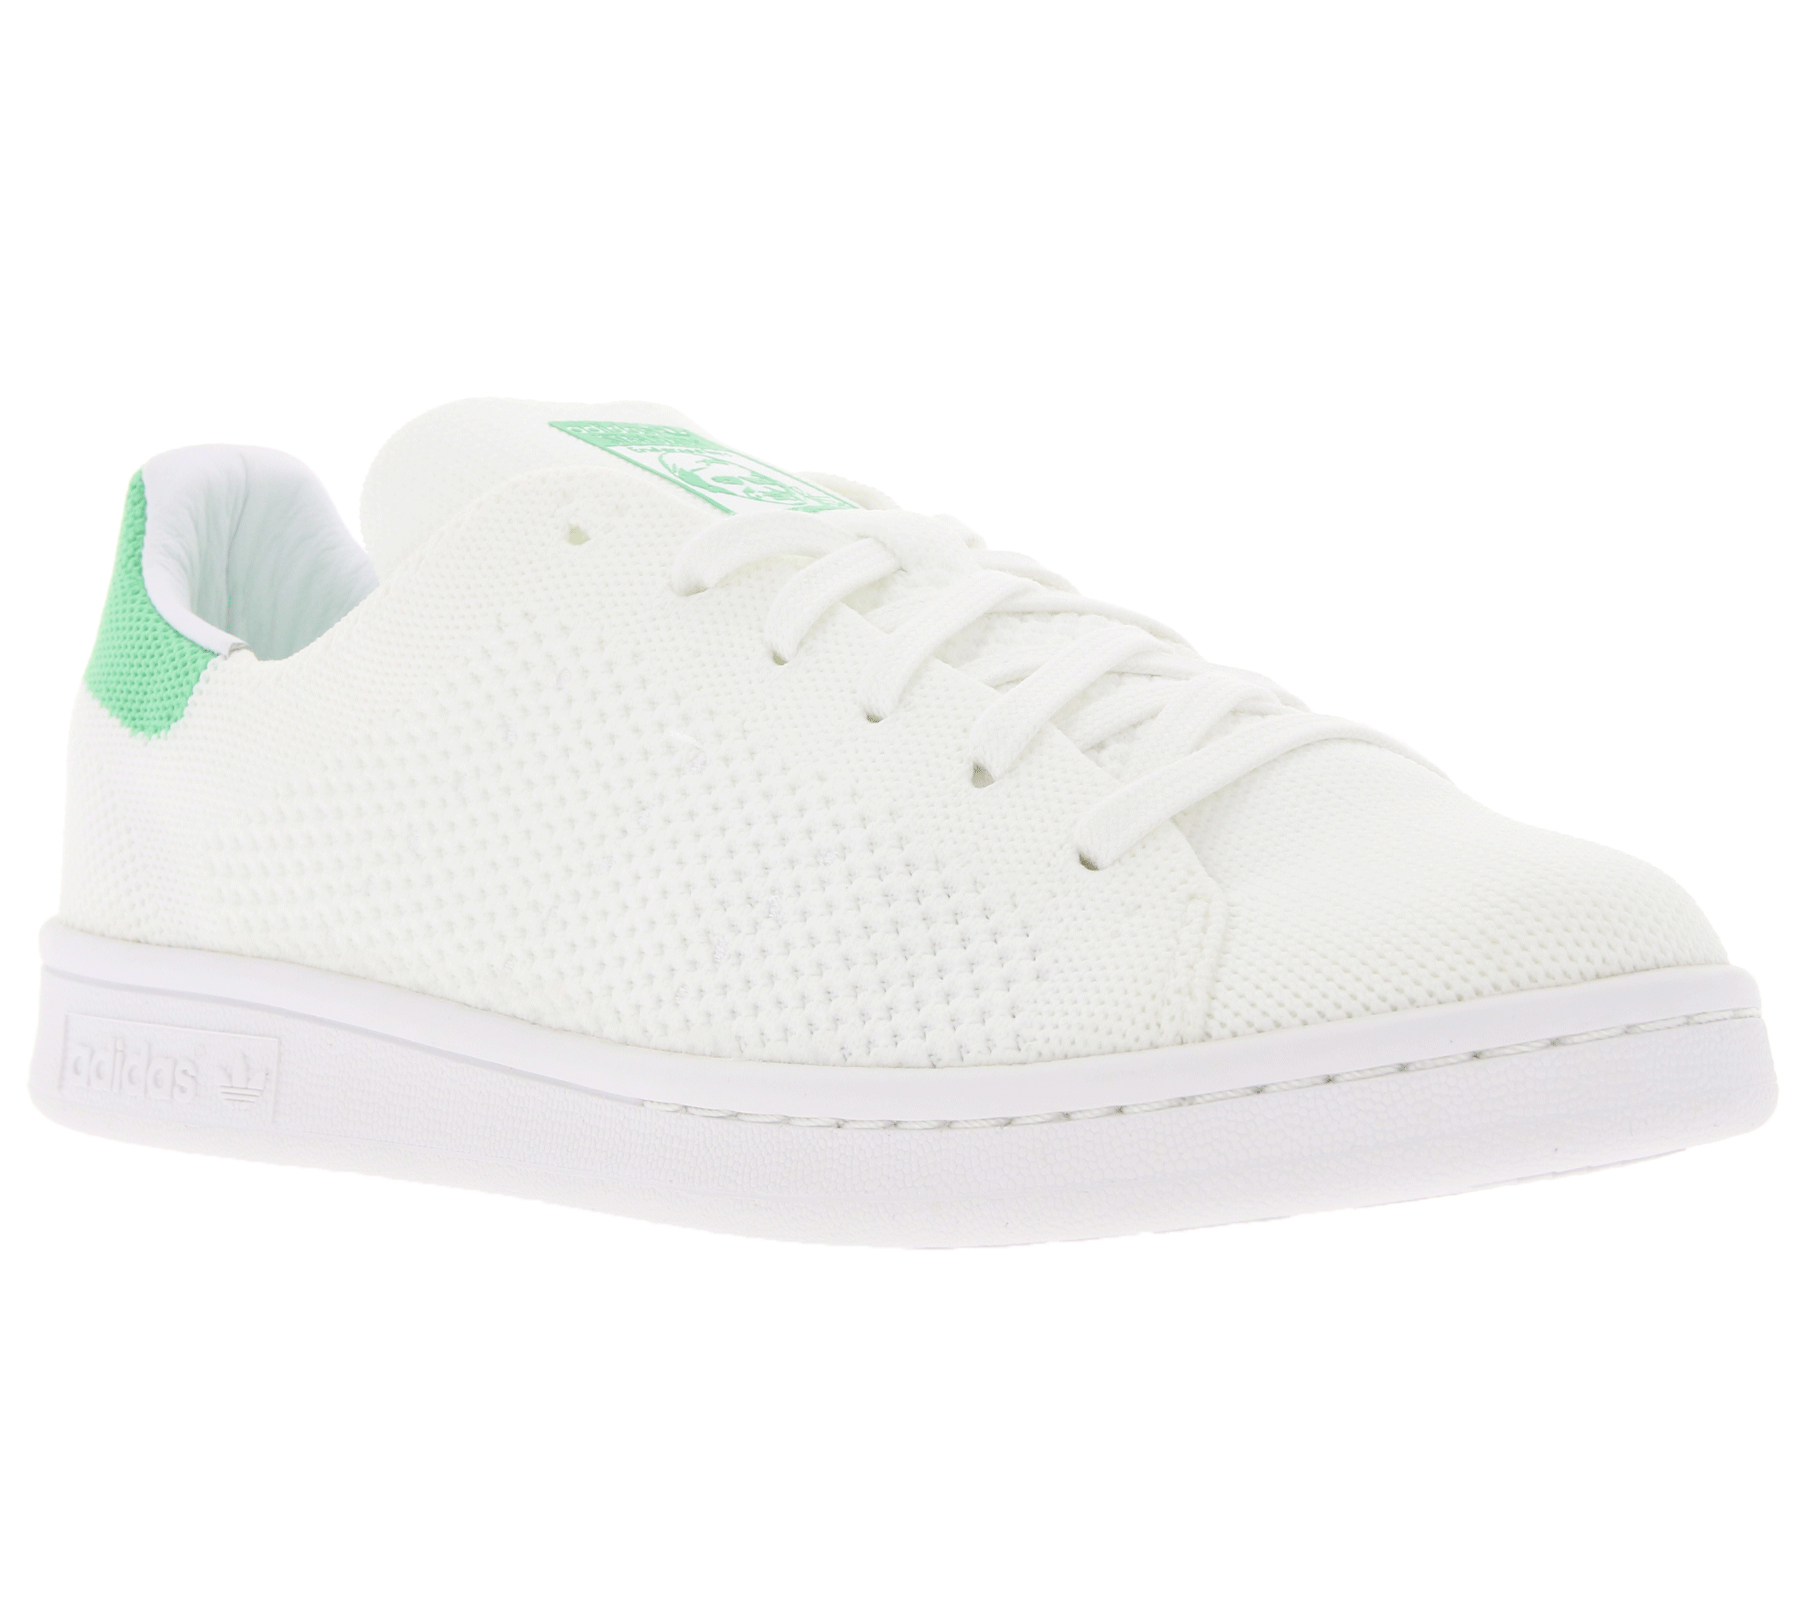 adidas Damen-Schuhe Originals Stan Smith Primeknit Sneaker Weiß